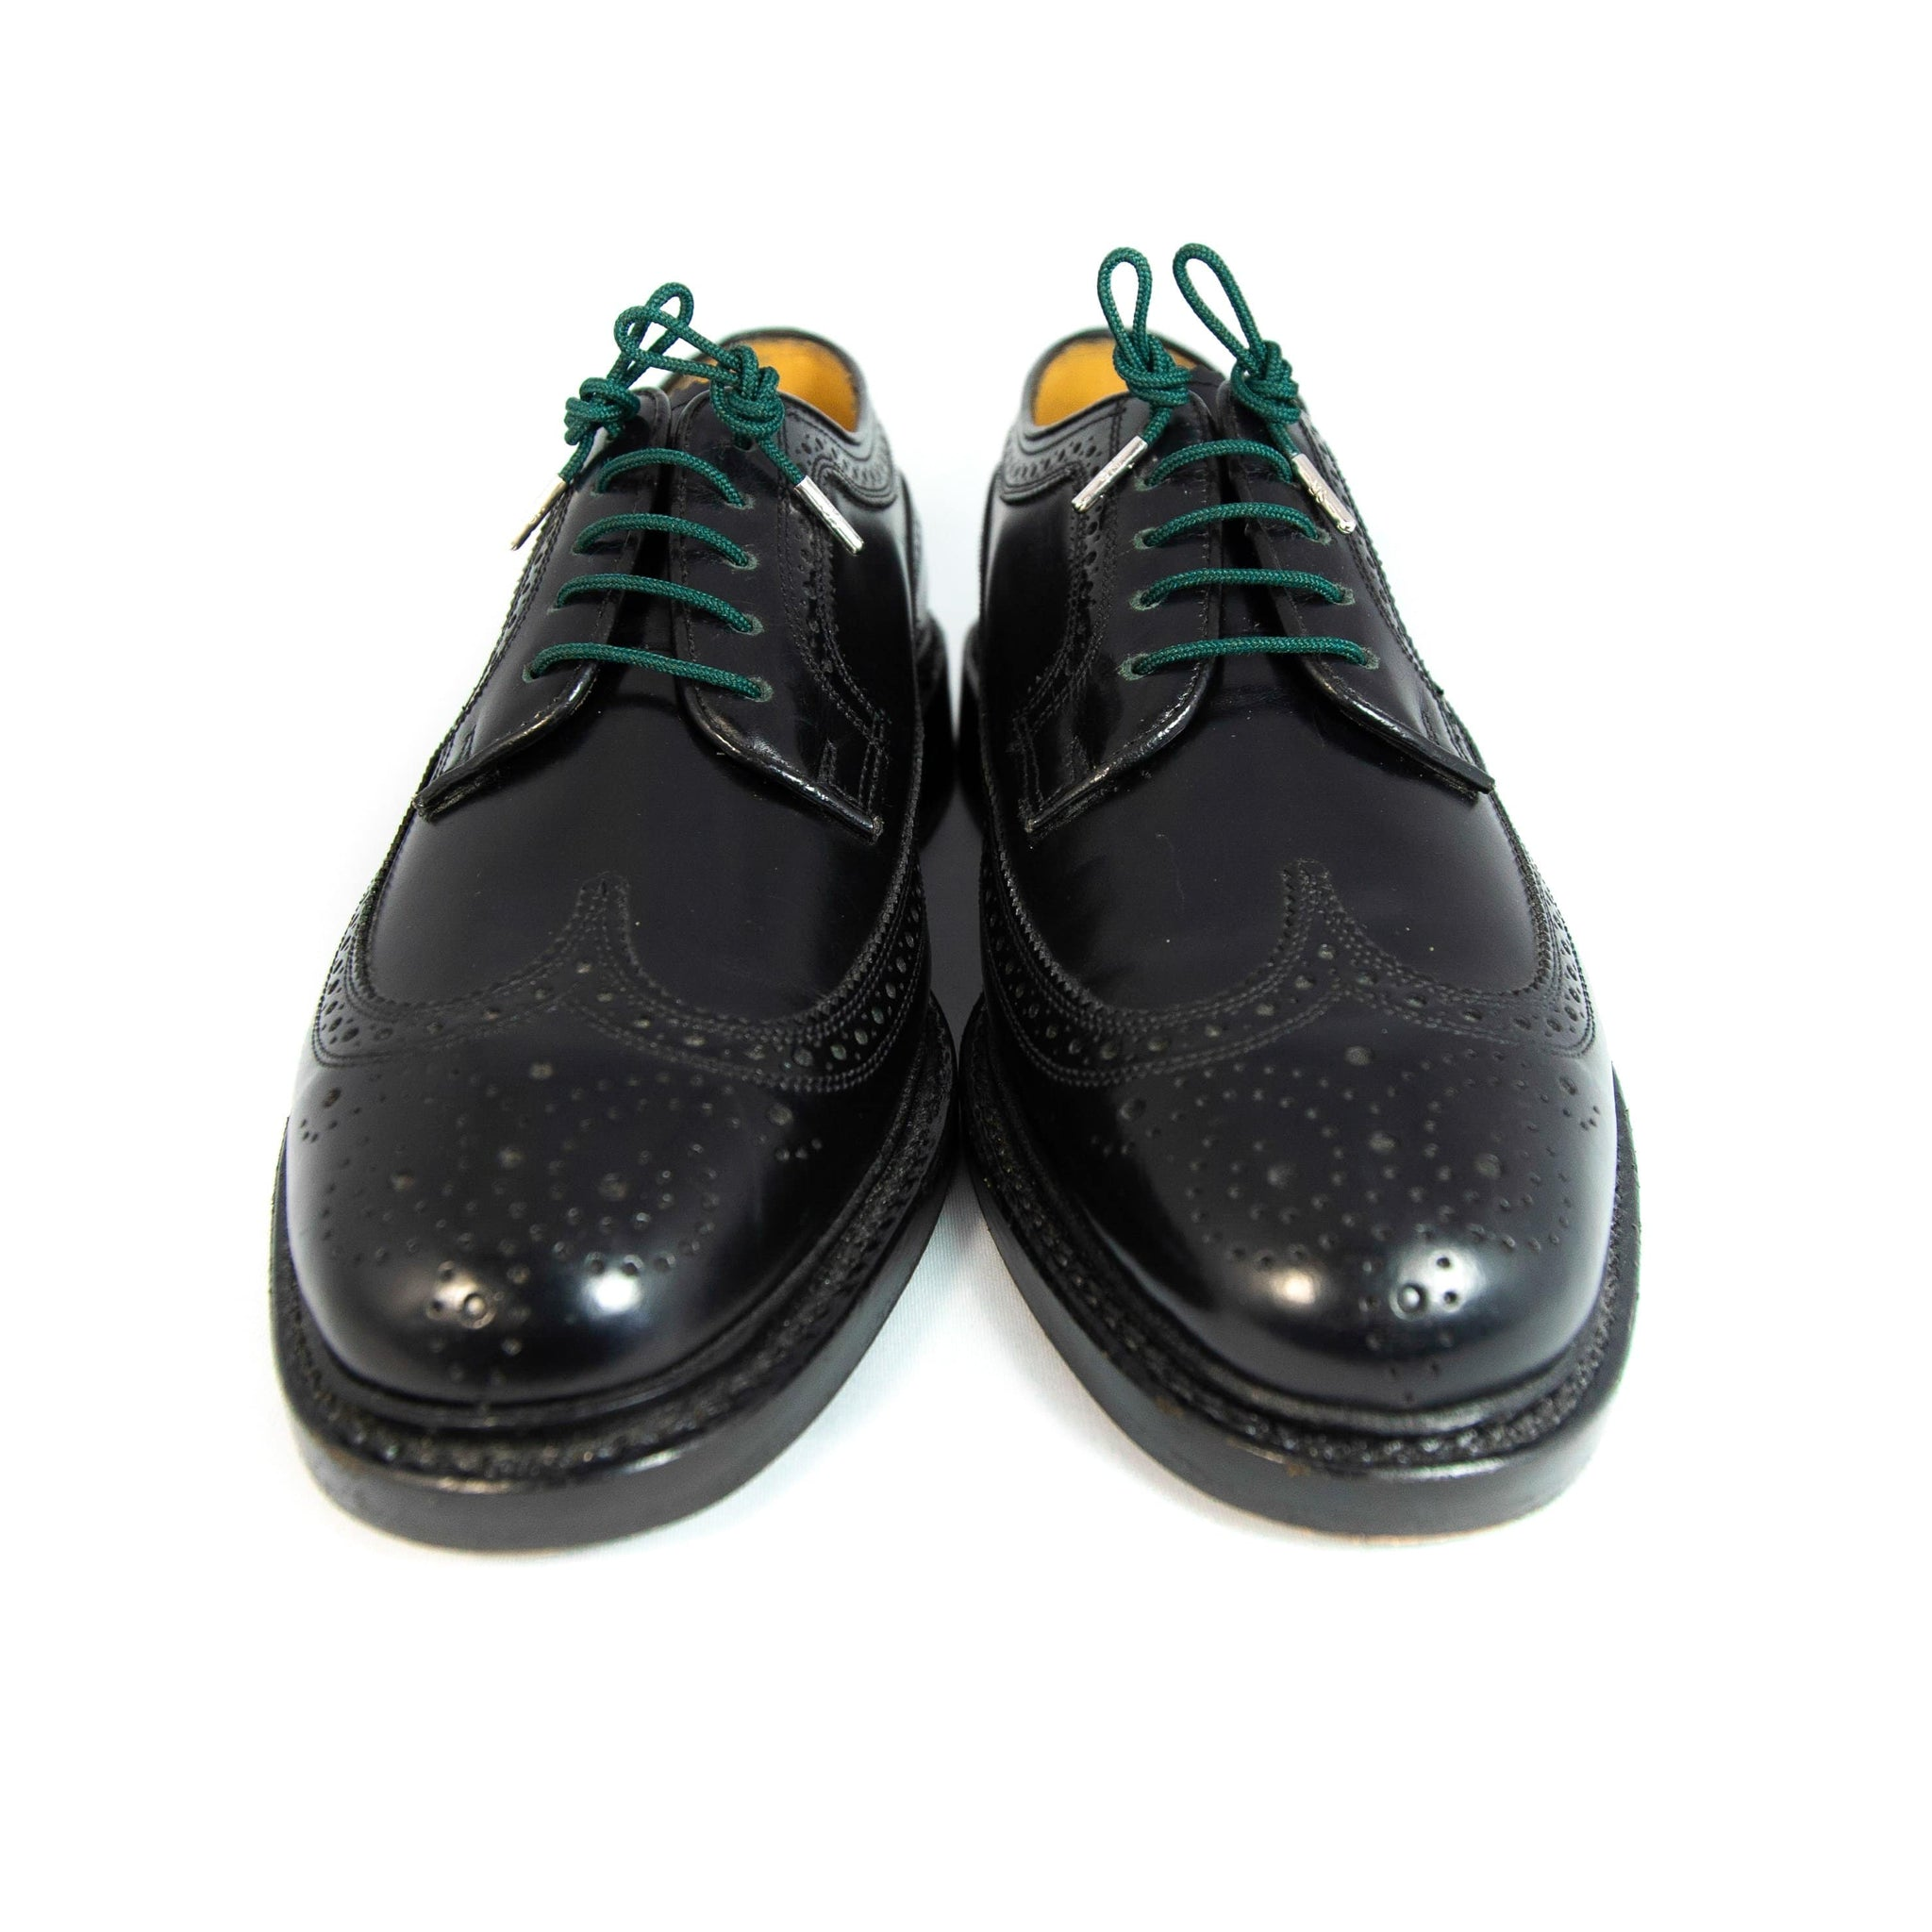 "Forest green laces for dress shoes, Length: 27""/69cm-Stolen Riches"